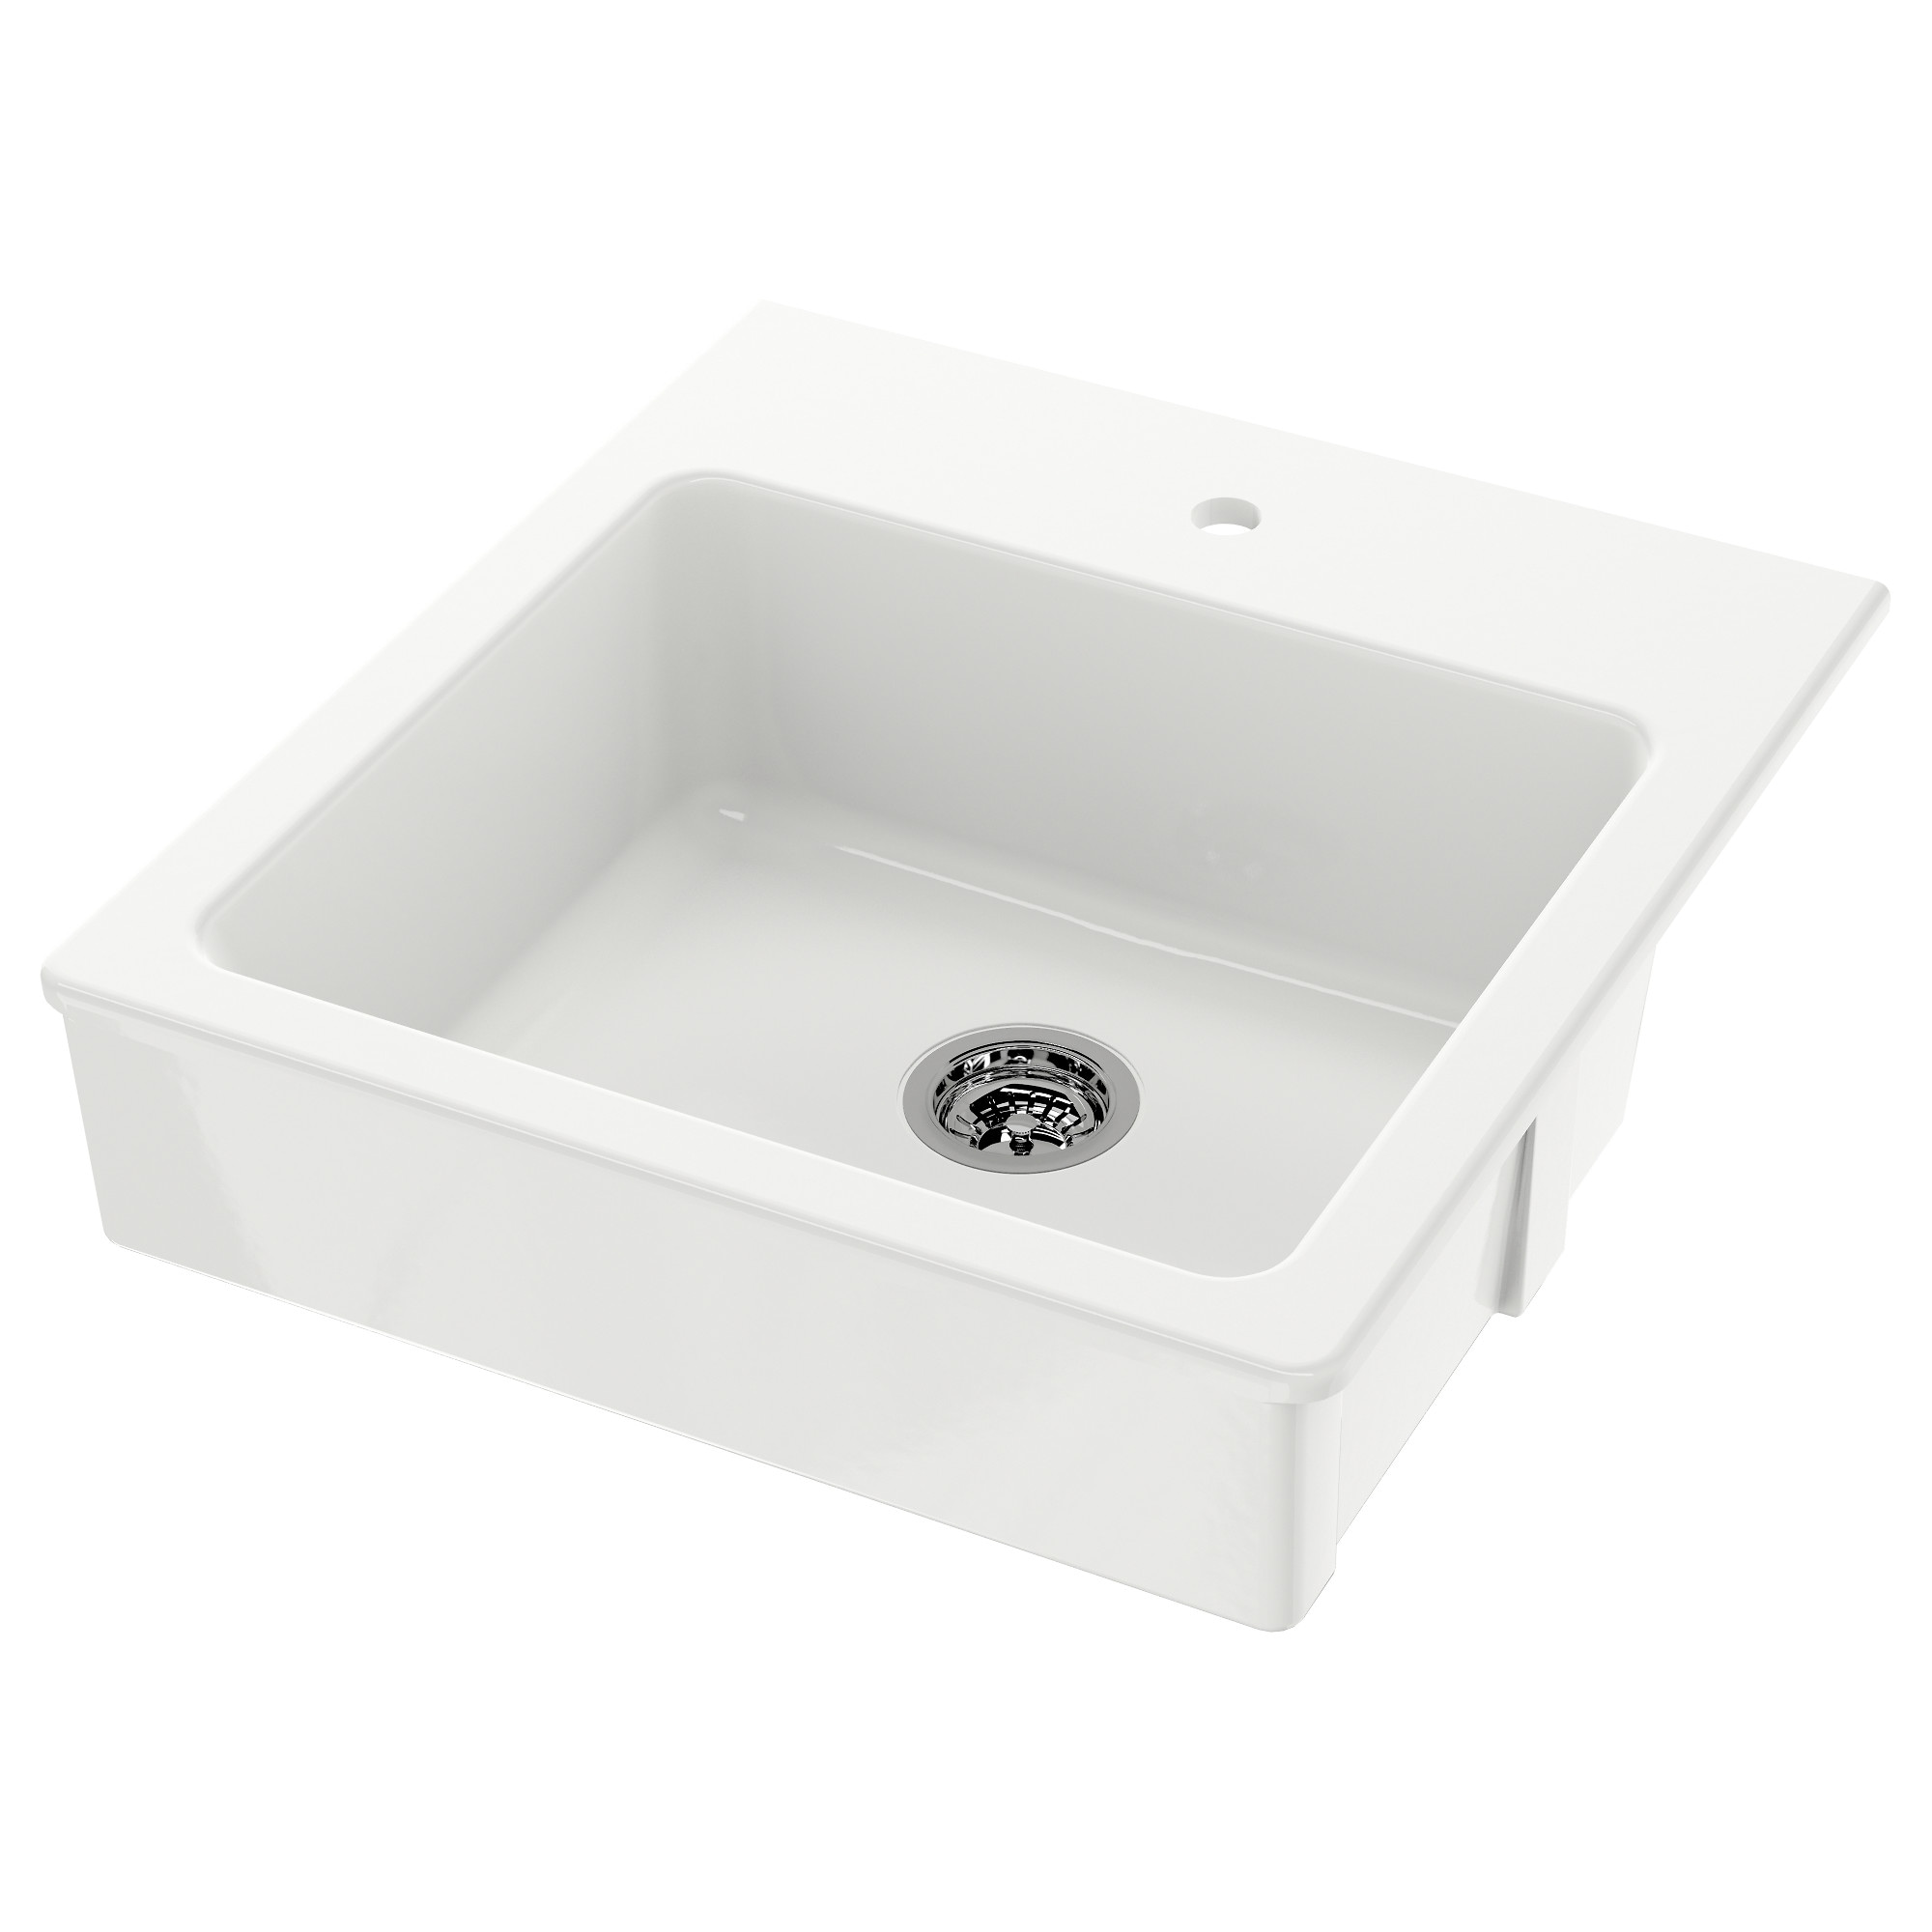 Ikea Porcelain Kitchen Sink universalcouncilfo